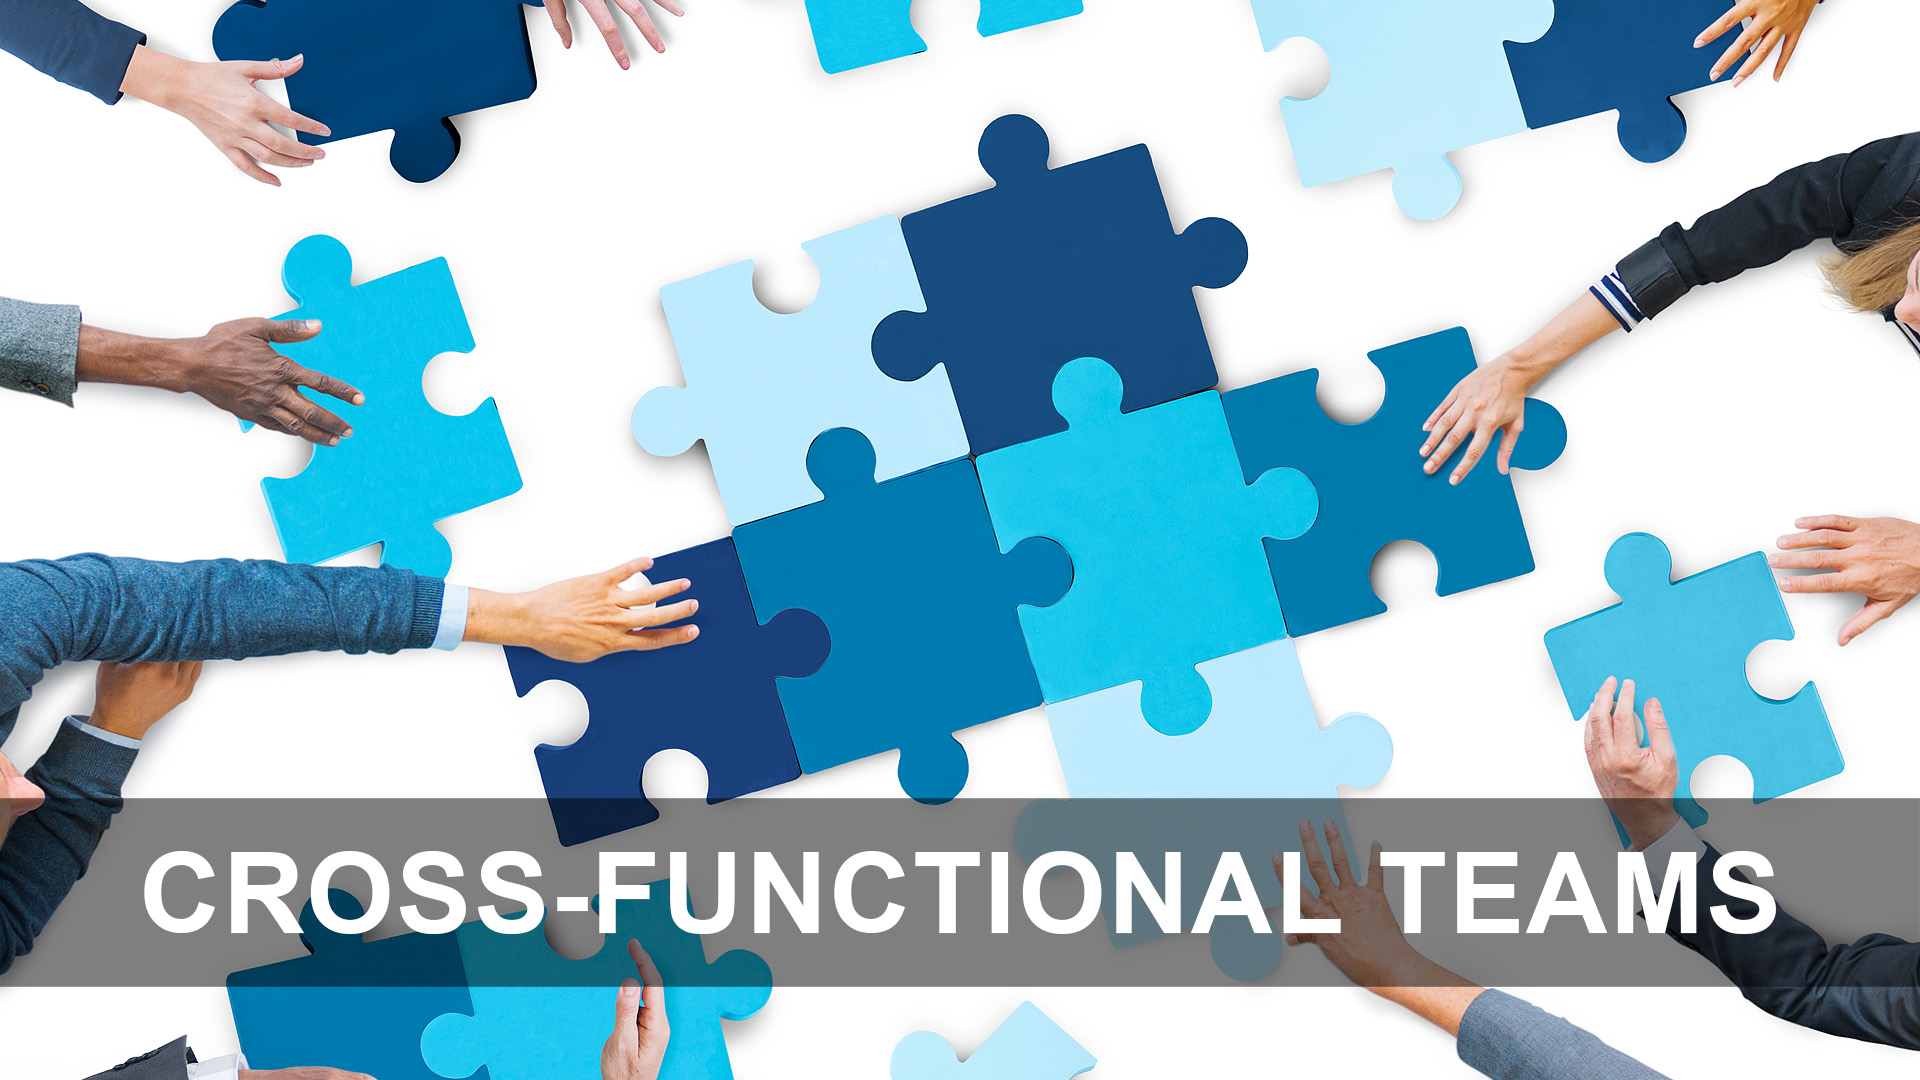 Cross-Functional Teams - KAM.jpg